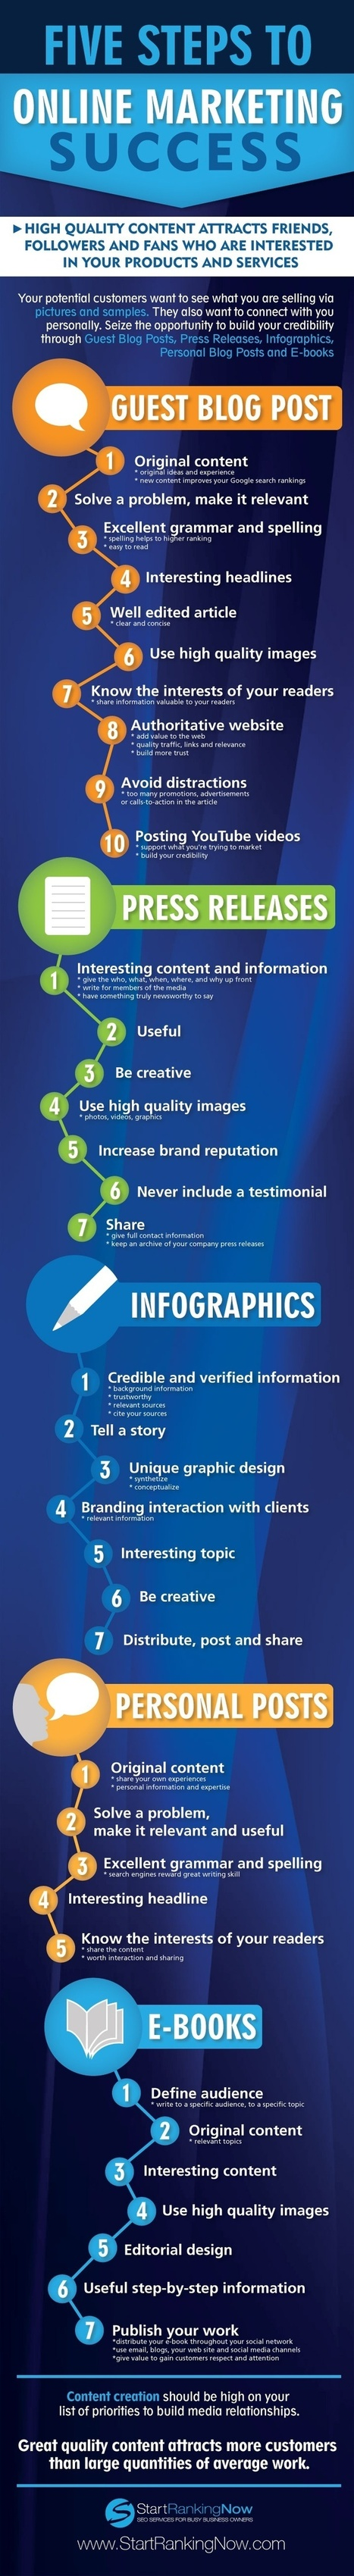 Five Steps to Online Marketing Success [Infographic] | Everything Marketing You Can Think Of | Scoop.it